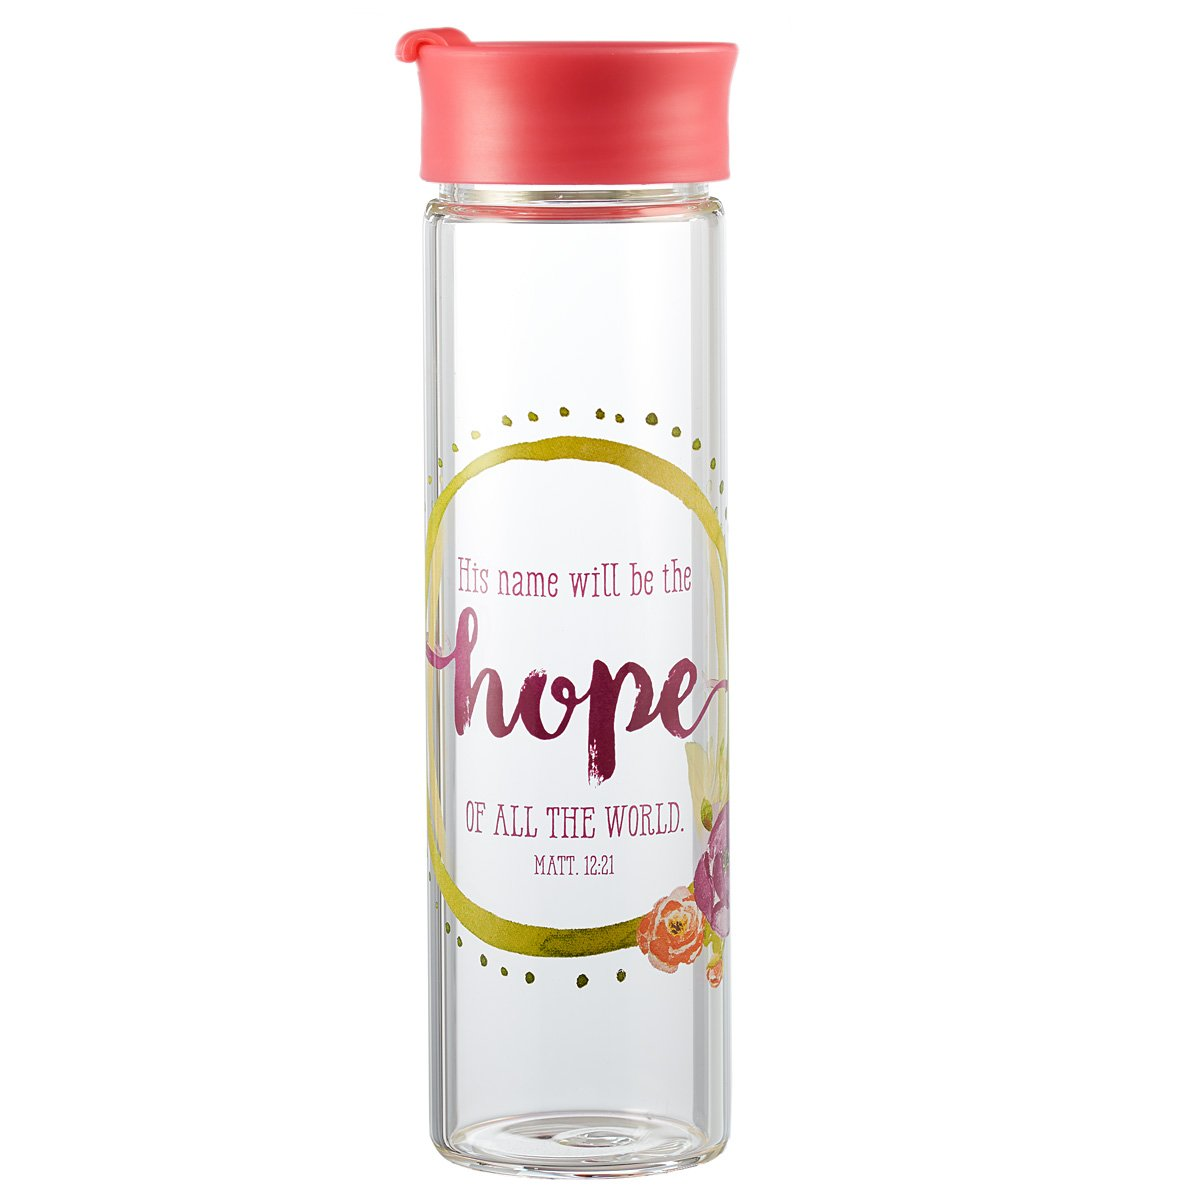 Watercolor Collection Tall Glass Drink / Water Bottle: ''His Name Will Be The Hope'' - Matthew 12:21 by Christian Art Gifts